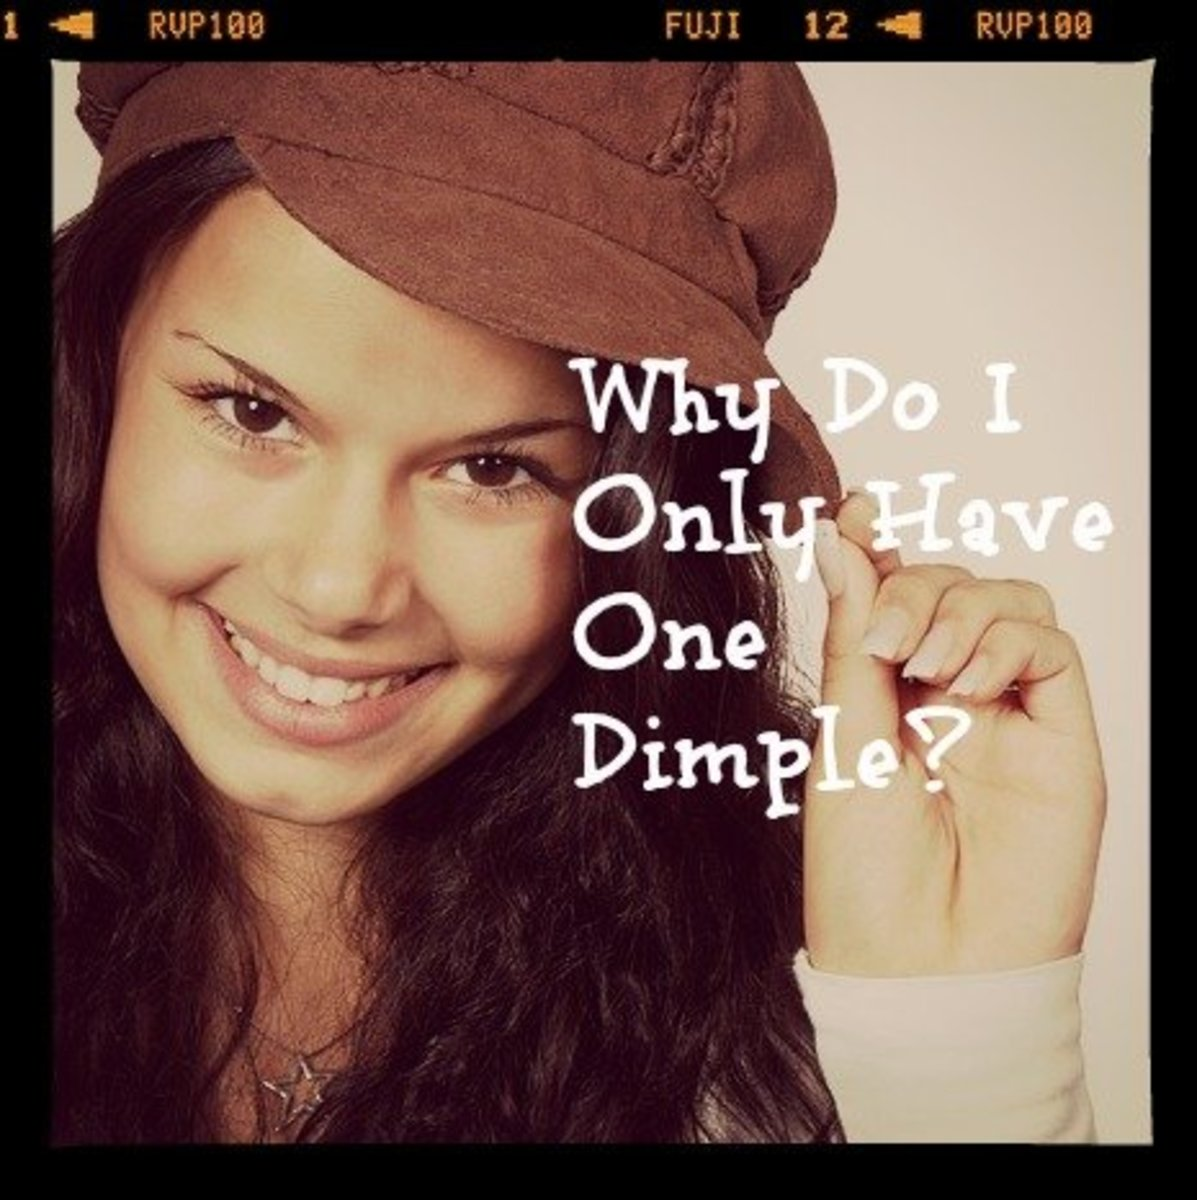 how to draw a smile with dimples